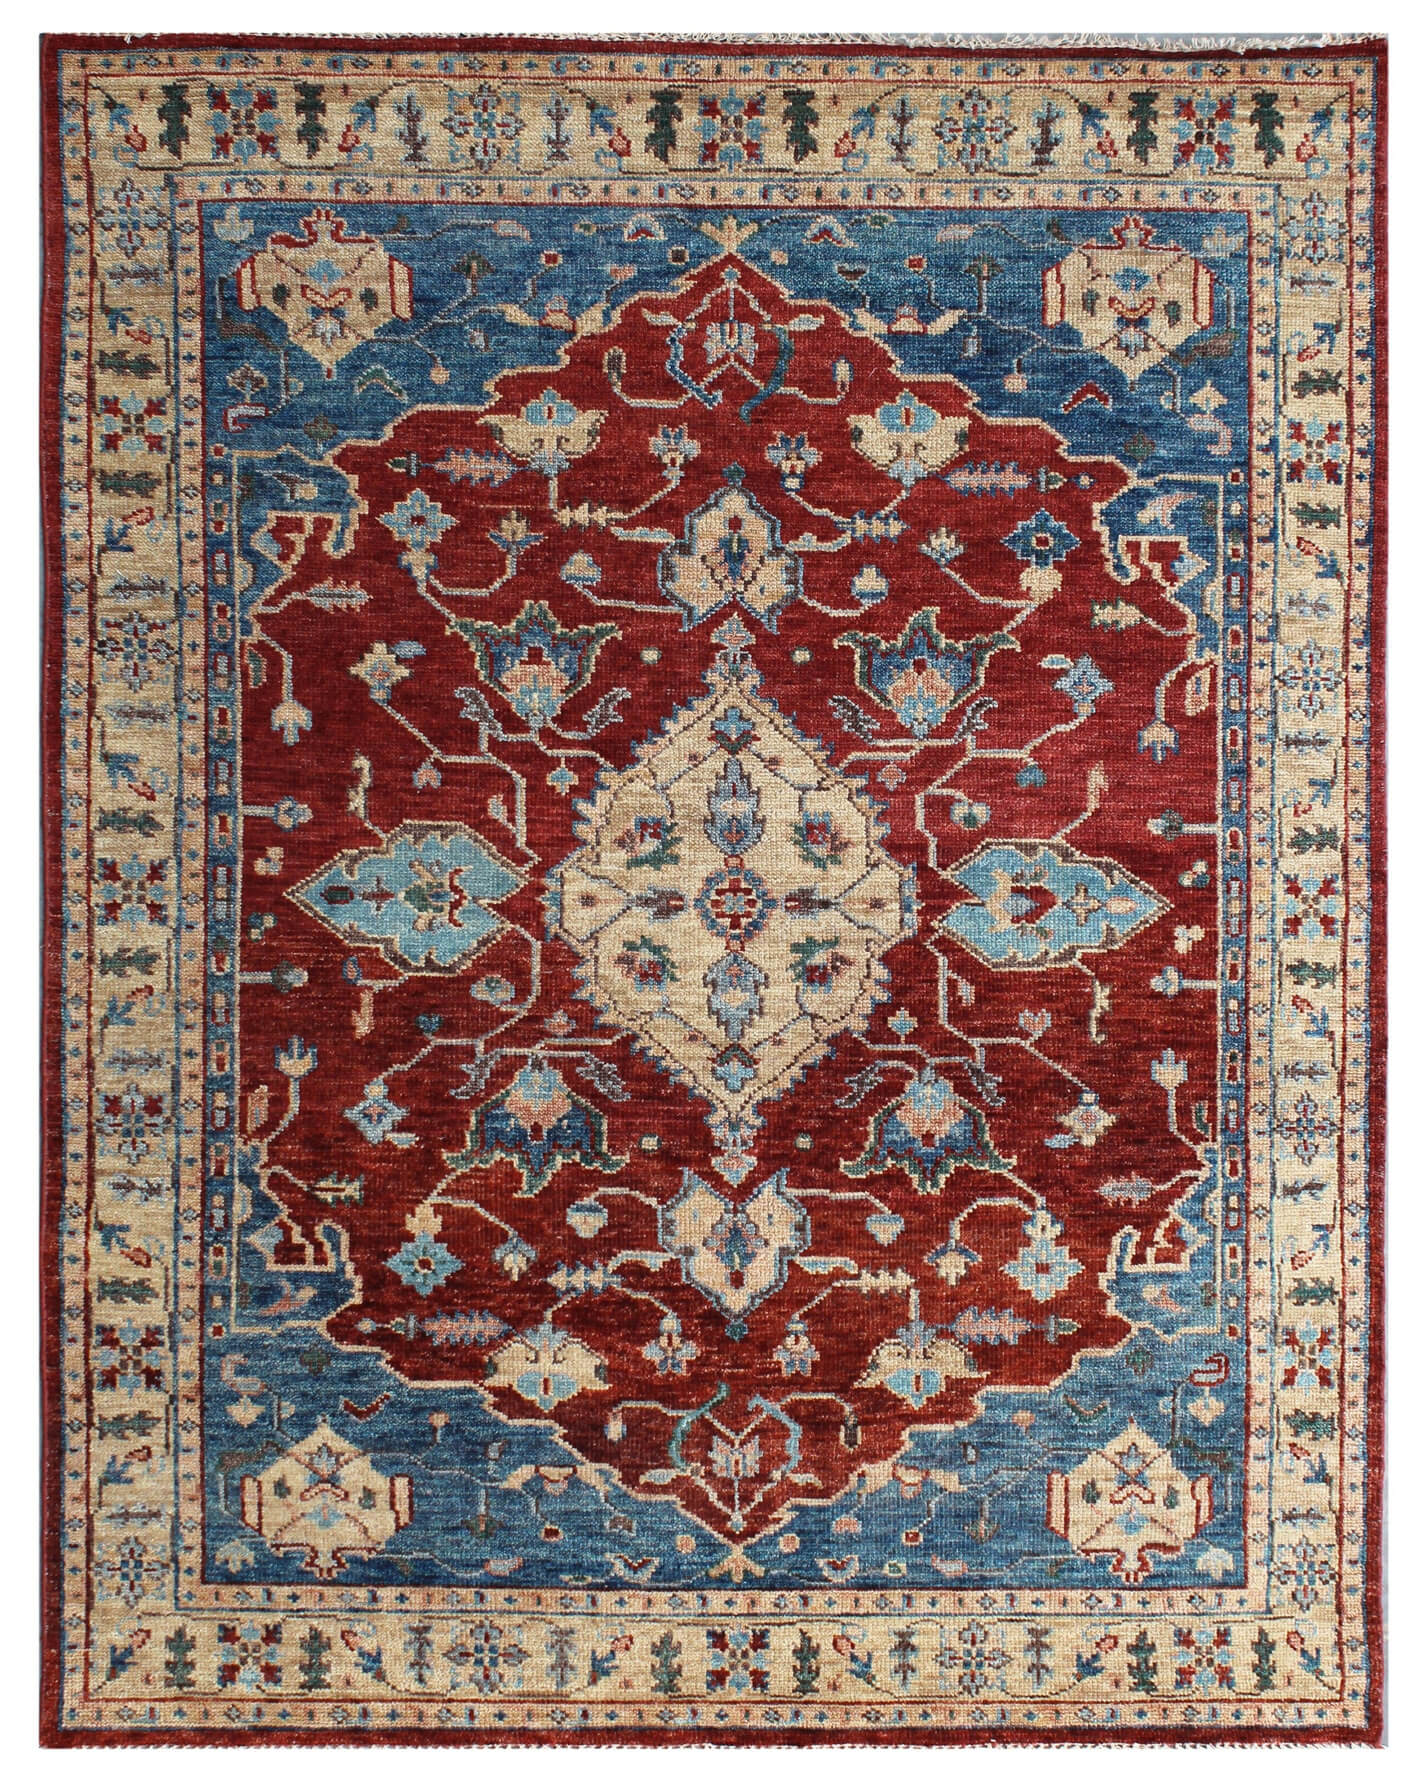 ciceroni – 3 rug brands India – rug brands – Cocoon Fine Rugs – Village Weavers – The Ambiente – rugs in India – rug weavers in India – Popular Rug Brands in India - 3 Artisanal Rug Brands in India you must bookmark